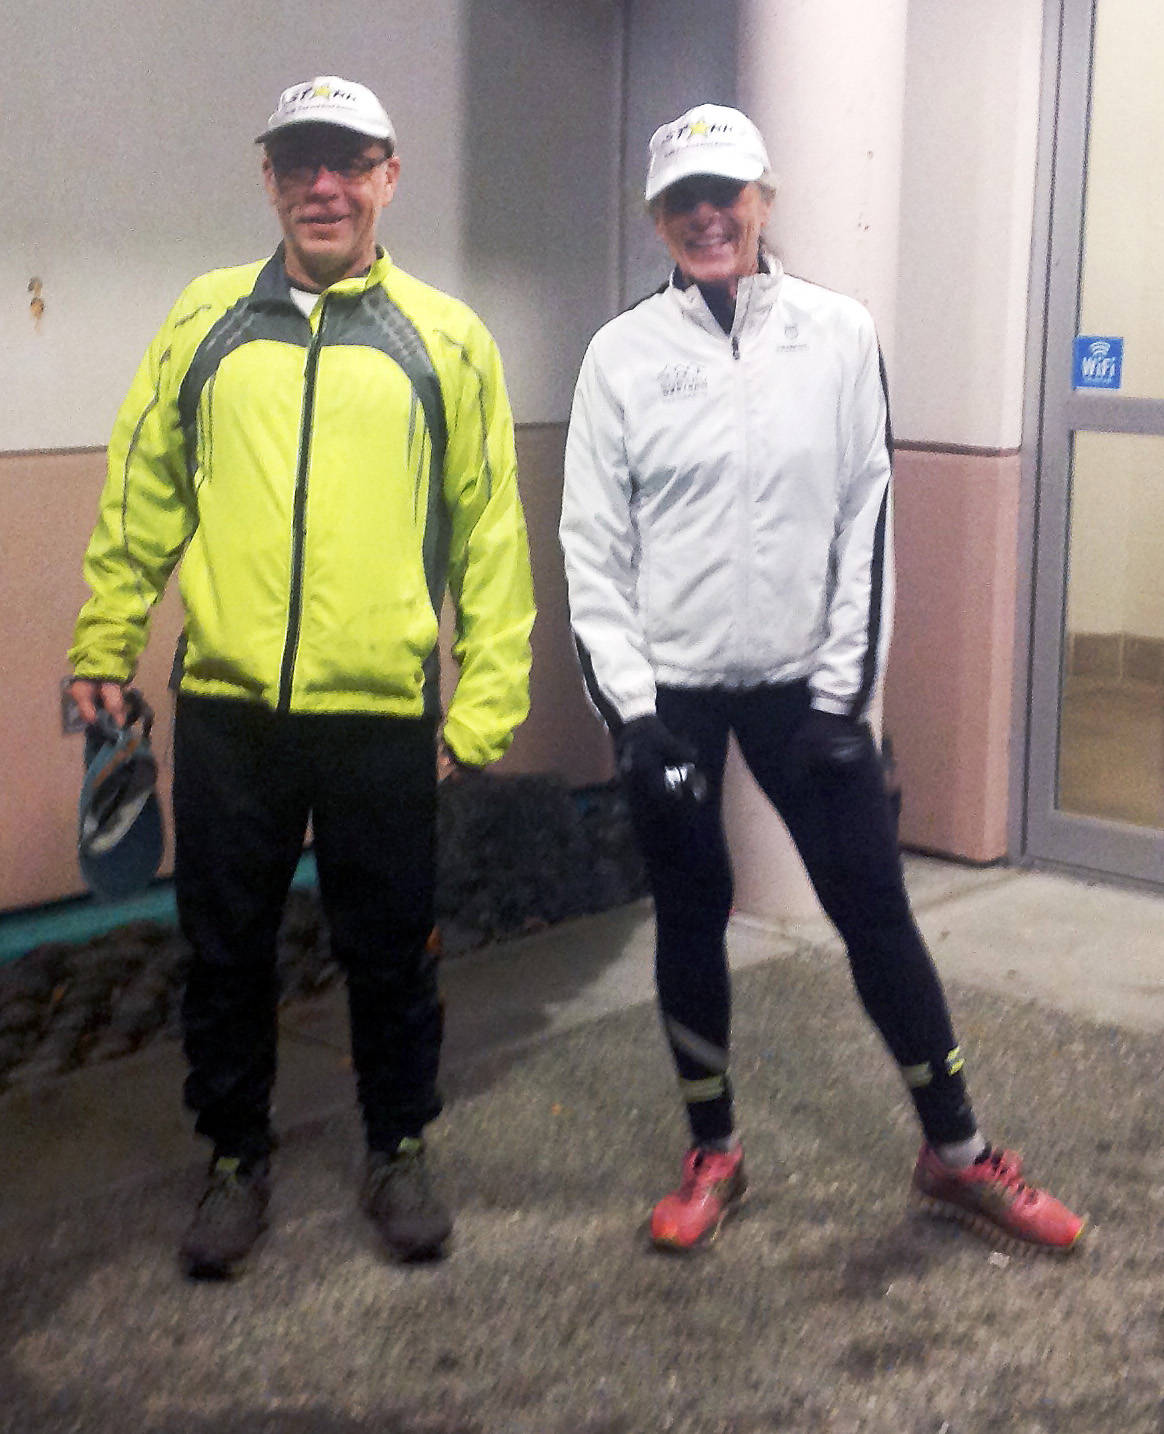 Jackie Eddy and Steve Kent, both longtime members of STARR, get set for a run on a cool fall night. There are many things you can do to make your fall and winter runs enjoyable, even when the weather isn't cooperating. (Contributed)